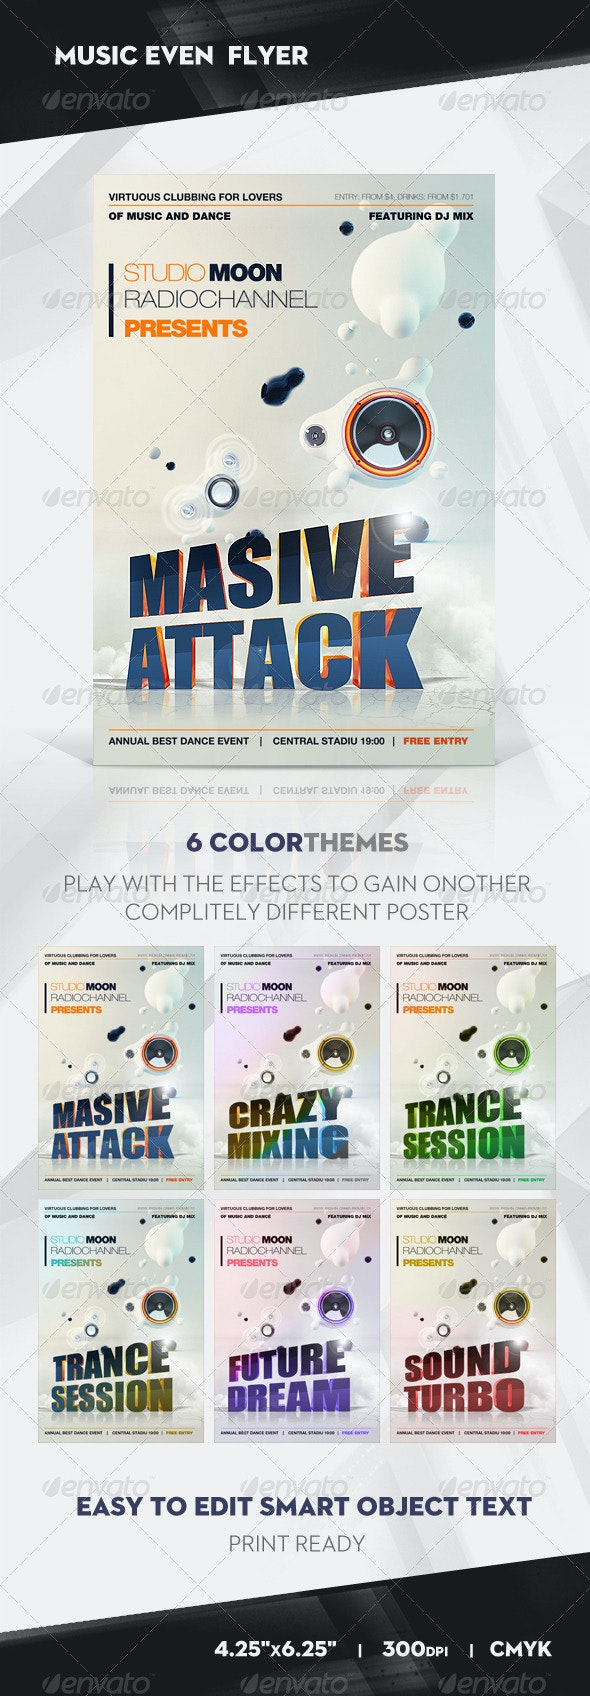 MASIVE ATTACK Party Flyer / Poster - Clubs & Parties Events